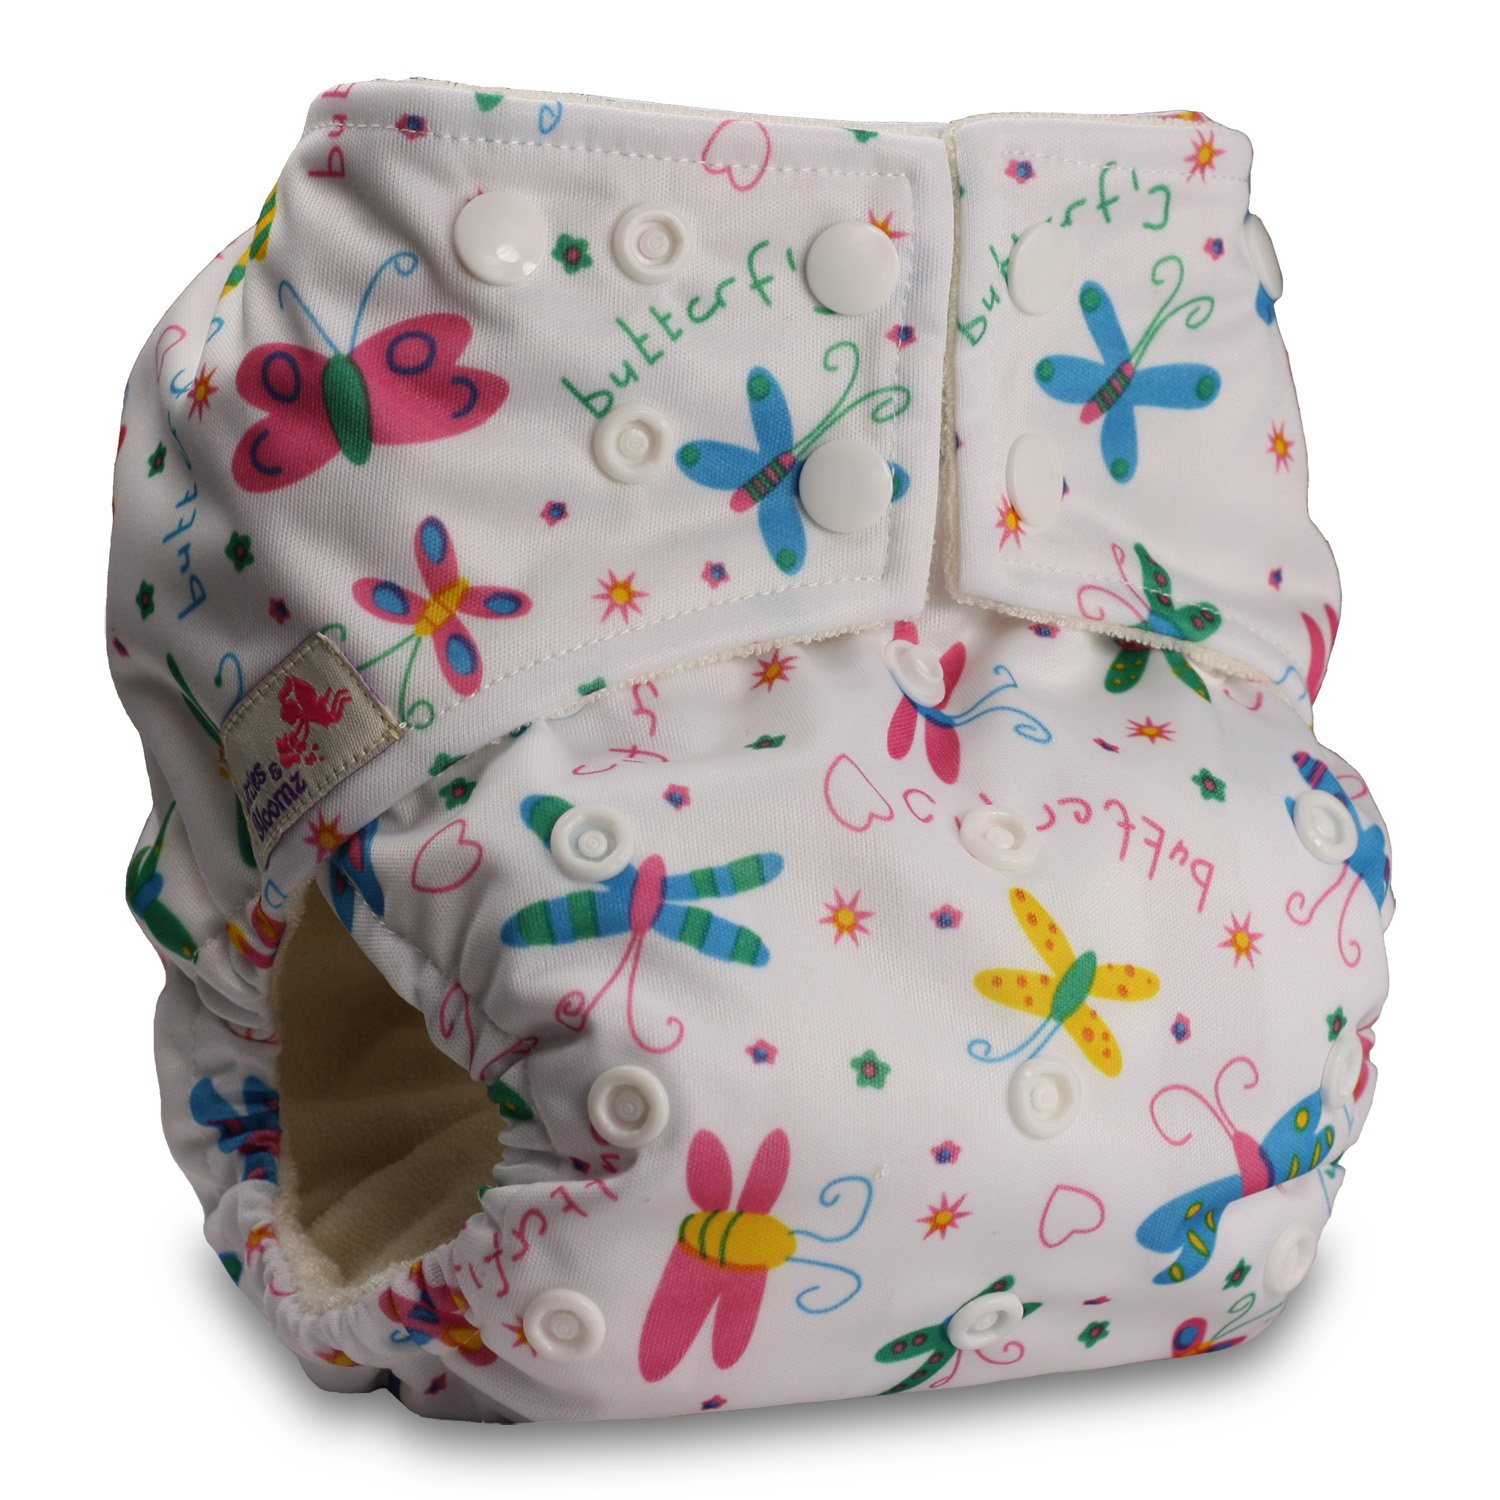 Pattern 12 Without Insert Fastener: Popper Littles /& Bloomz Baby Cloth Washable Reusable Nappy Pocket Diaper Bamboo